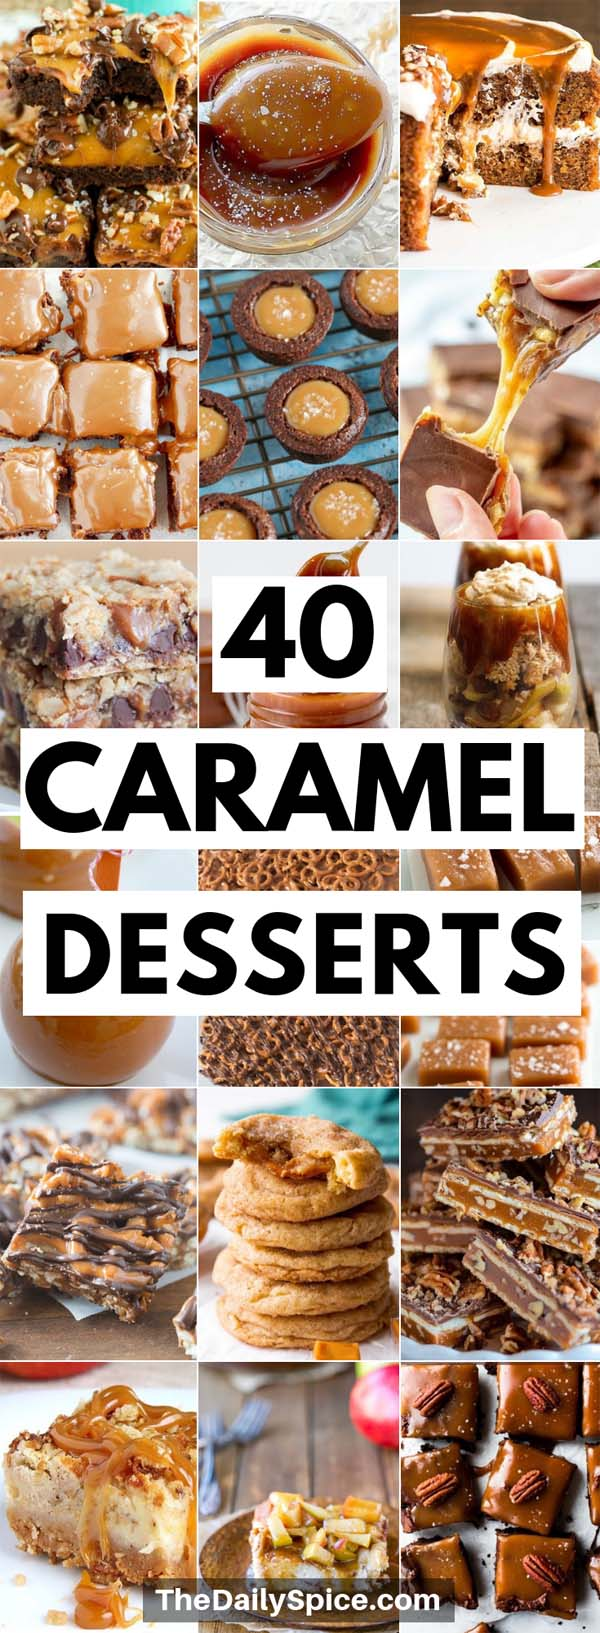 Caramel Dessert Recipes